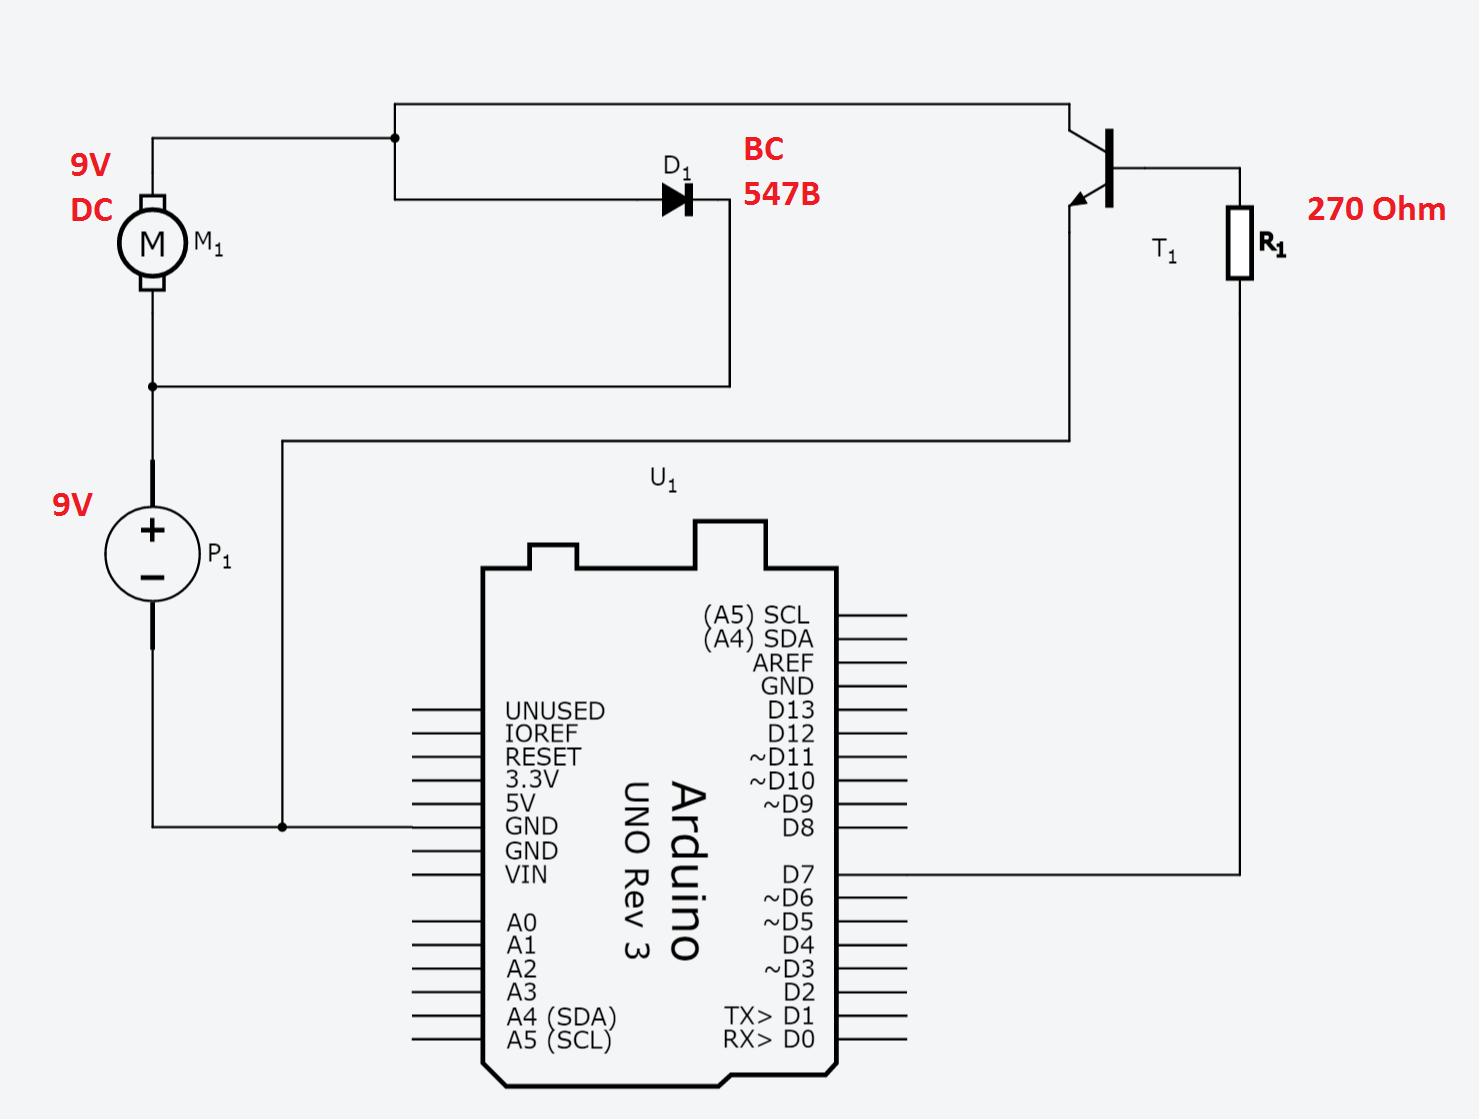 Controlling A Dc Motor With An External Power Source